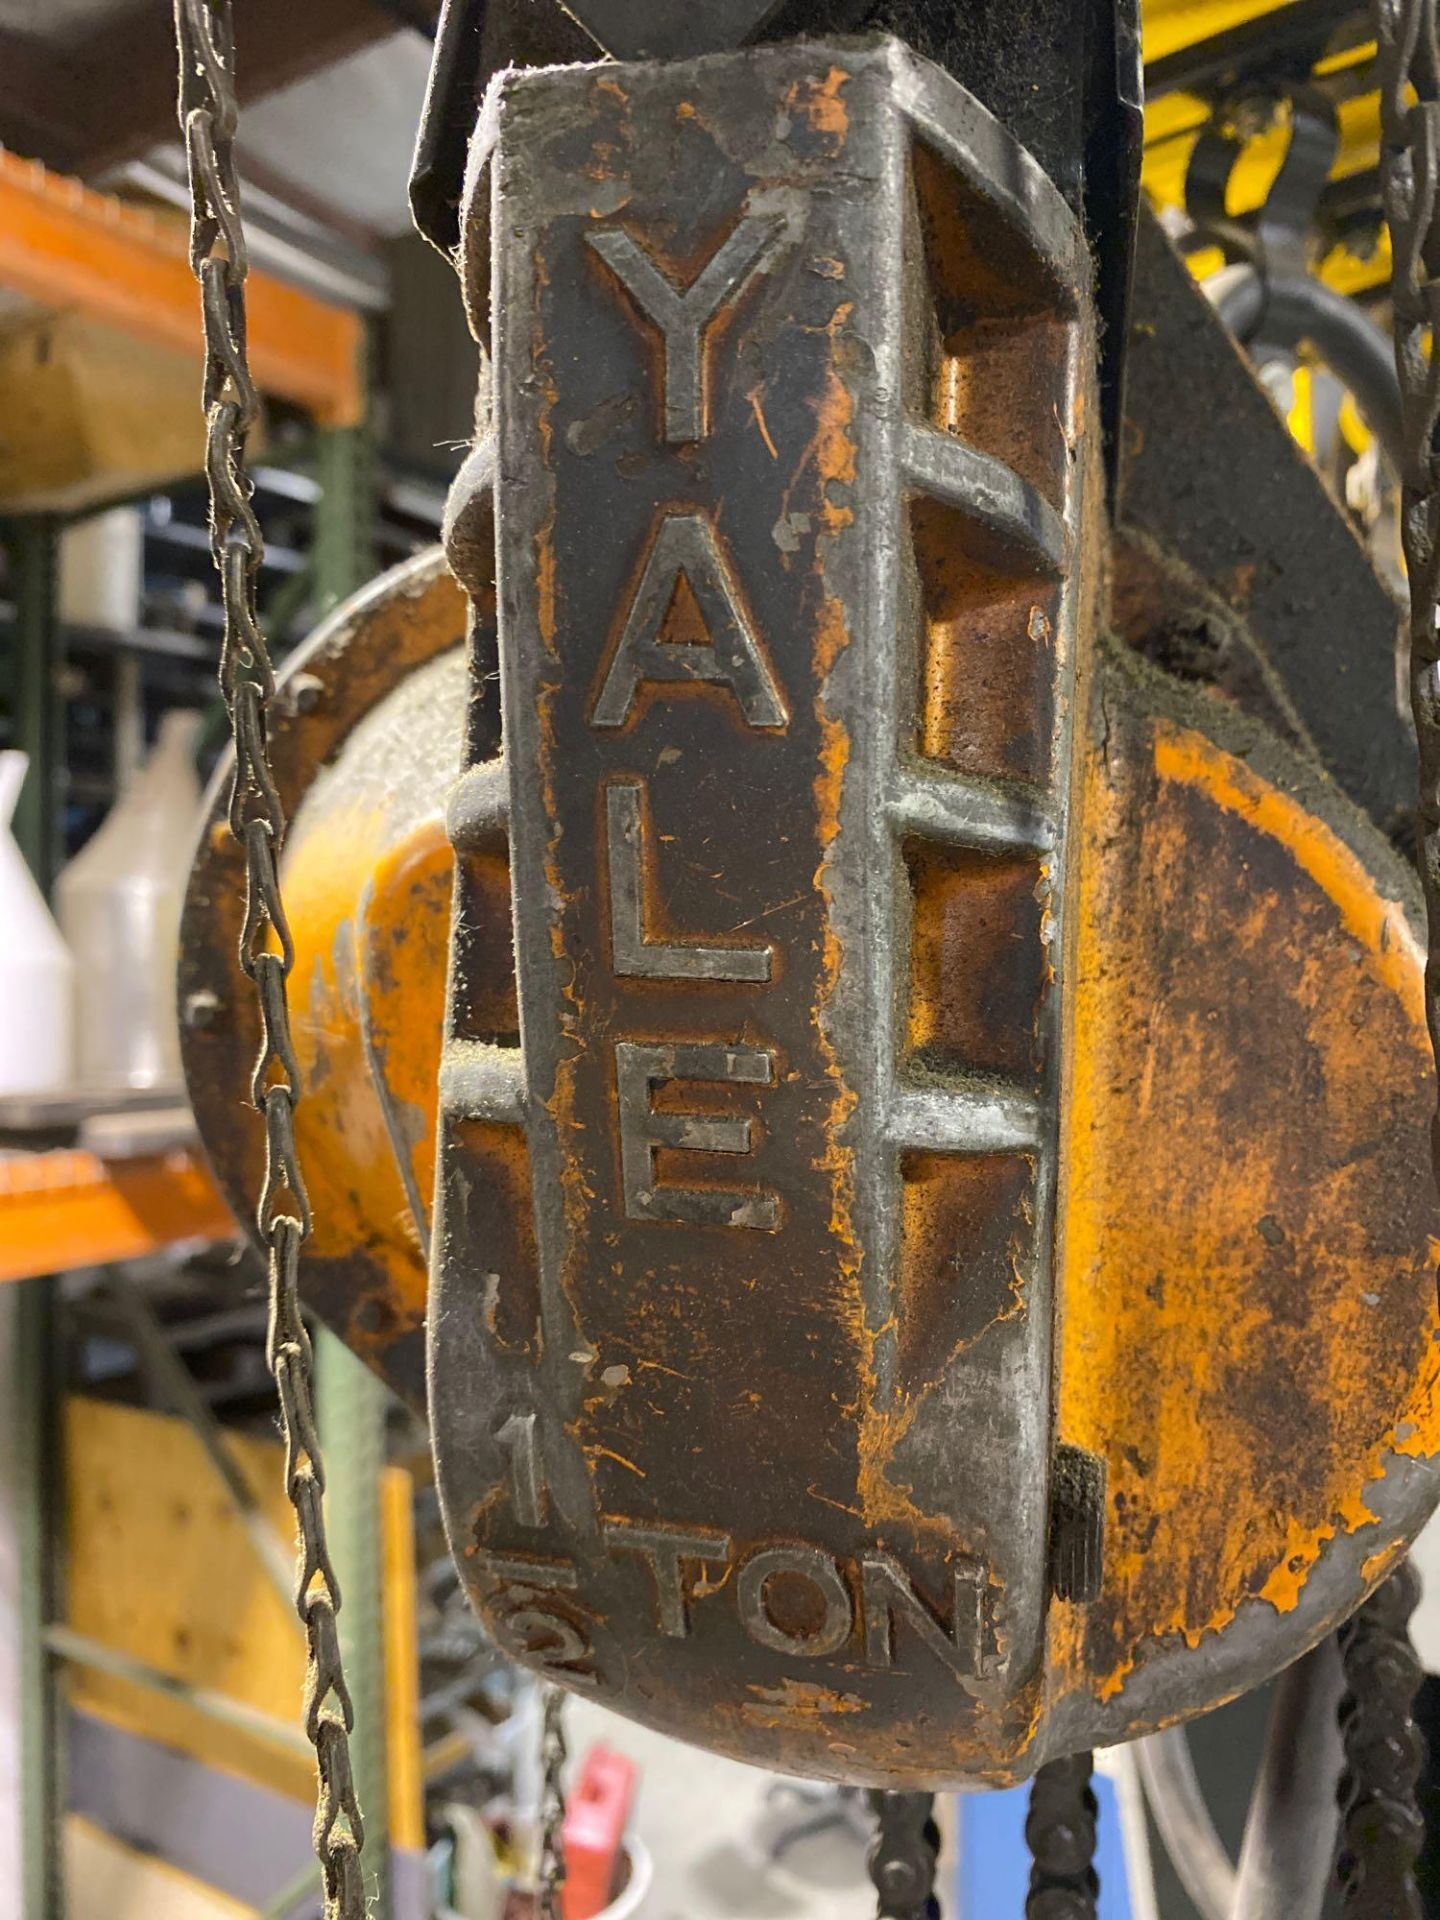 Over Head Jib Crane with Shannon Hoist and Yale Pulley System - Image 13 of 13